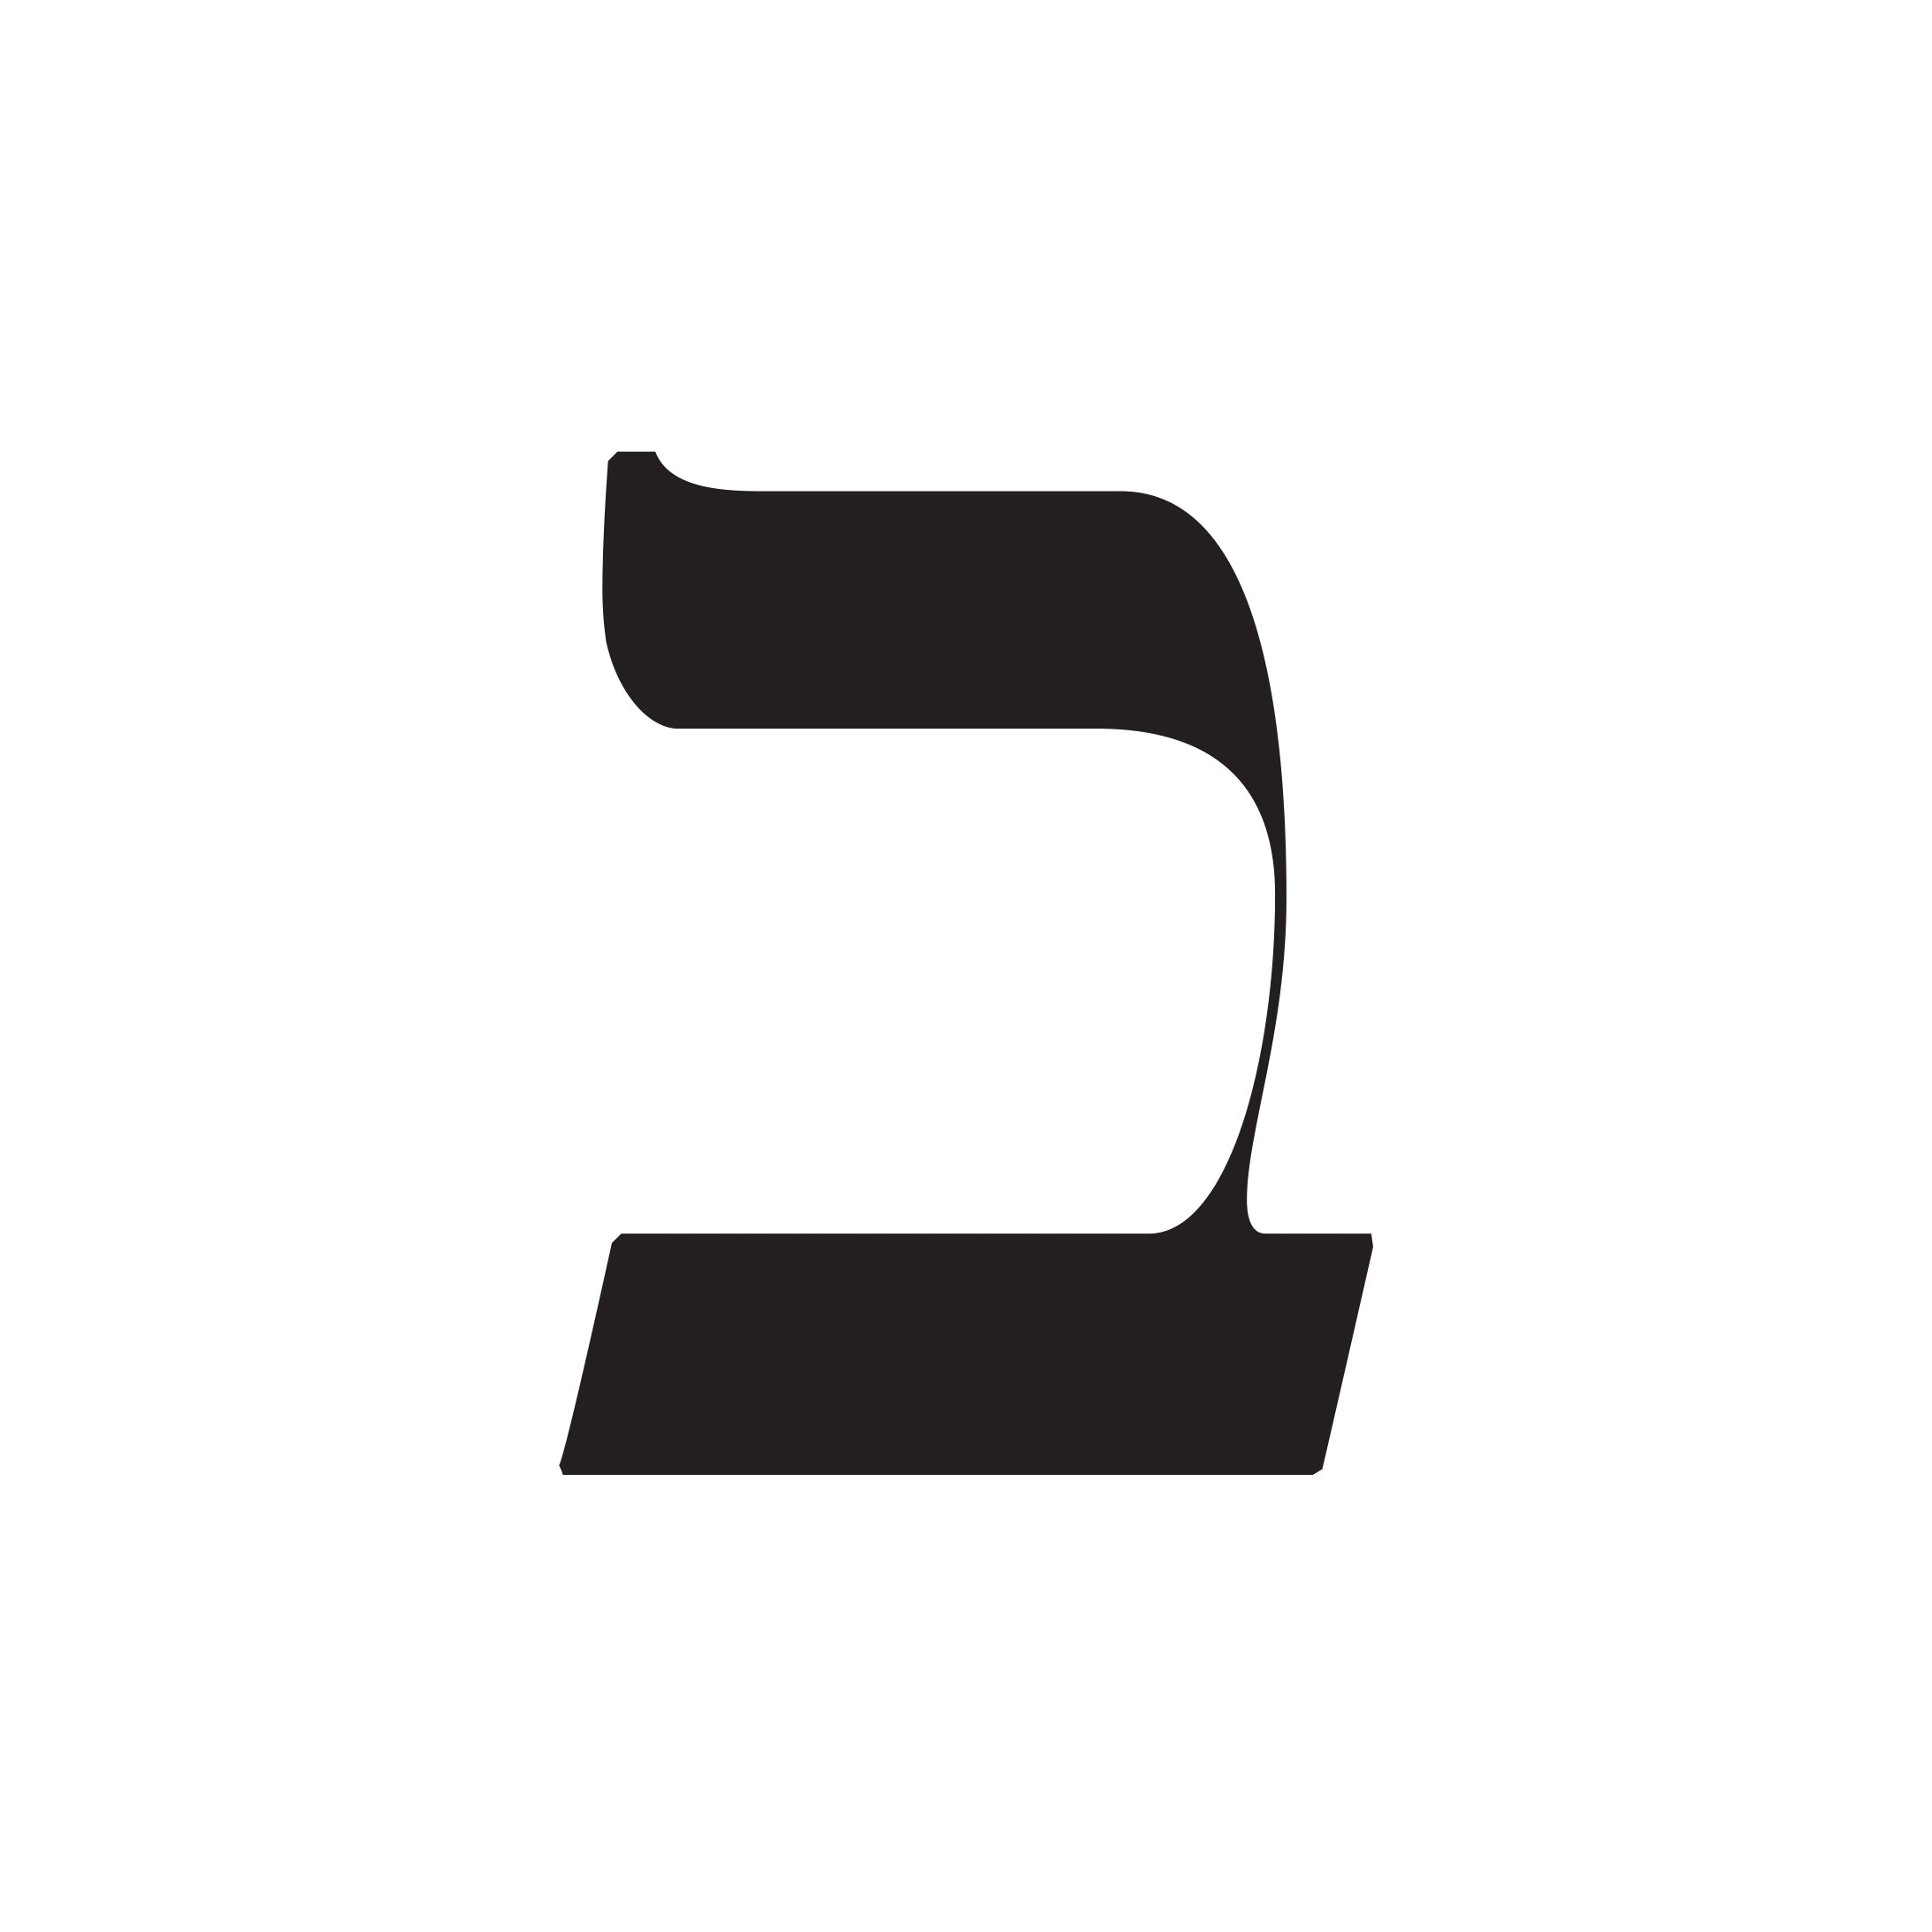 Moshik Hebrew Typeface | Moshik Nadav Fashion Typography and